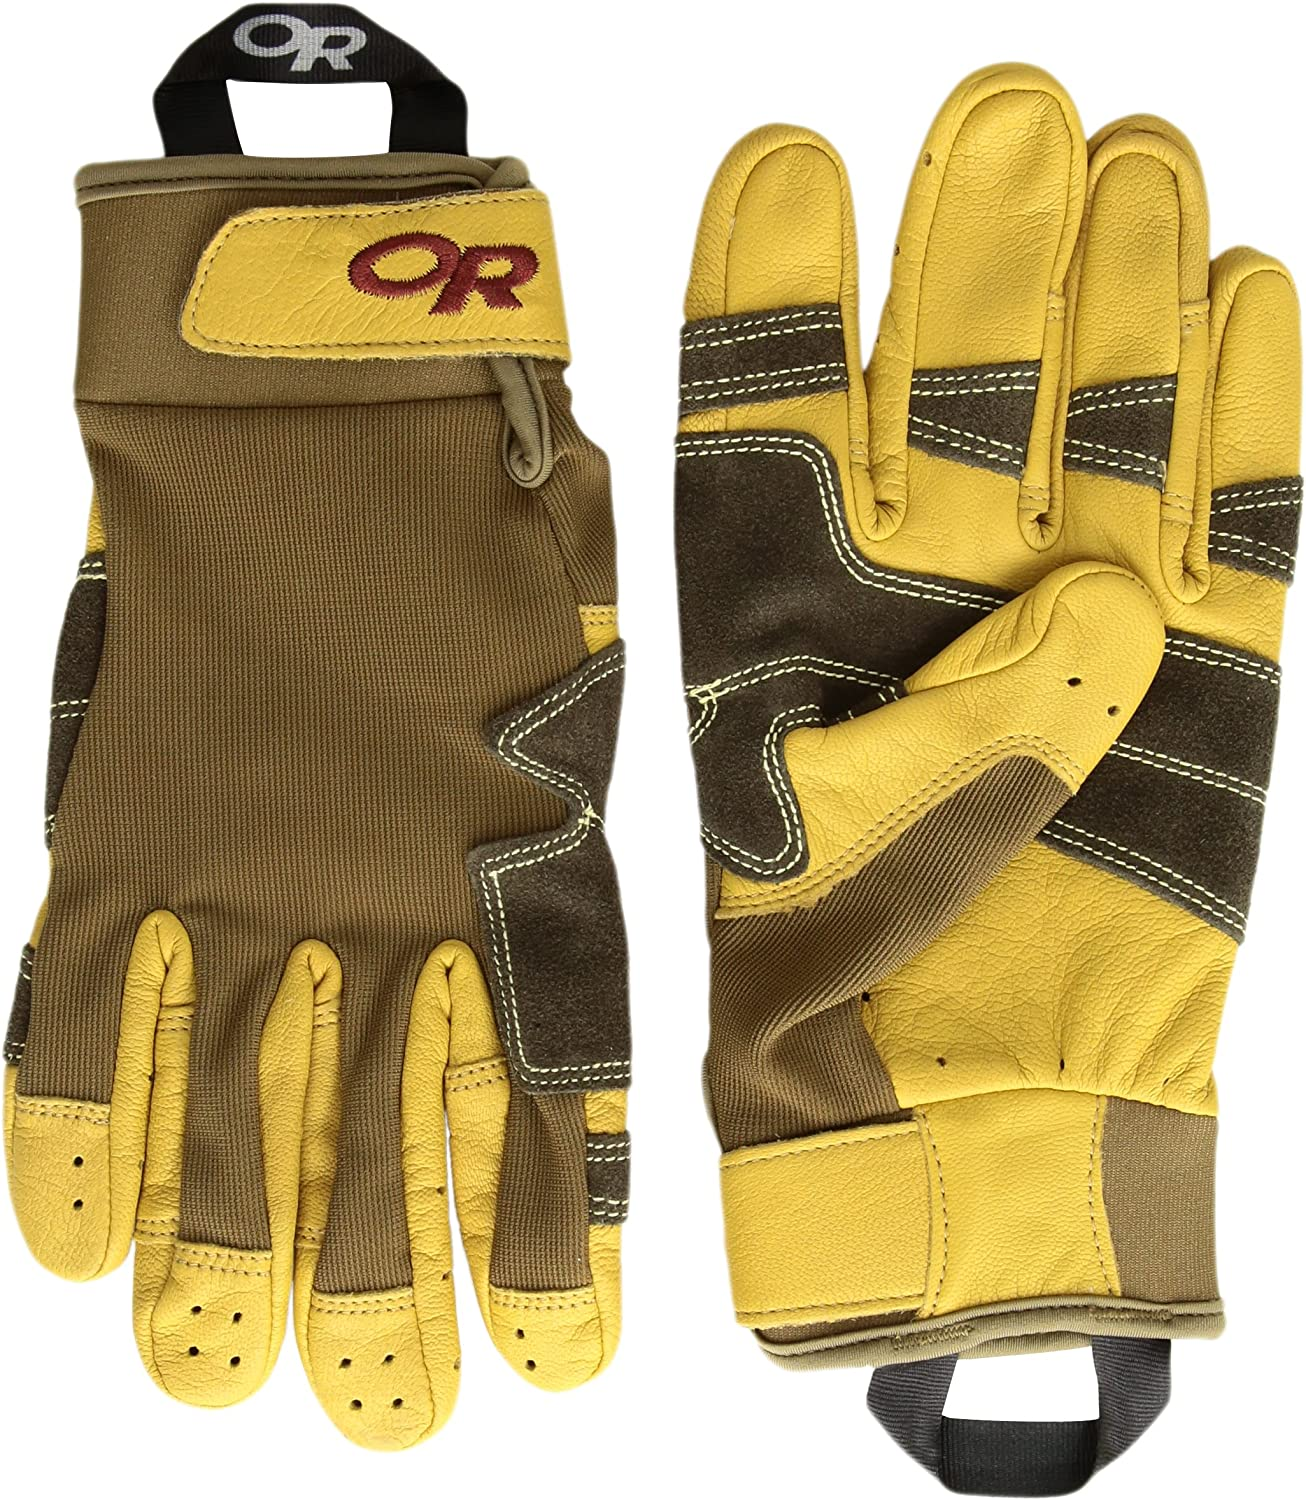 Low price Outdoor Research Direct Route Natural Max 49% OFF X-Small Gloves Earth